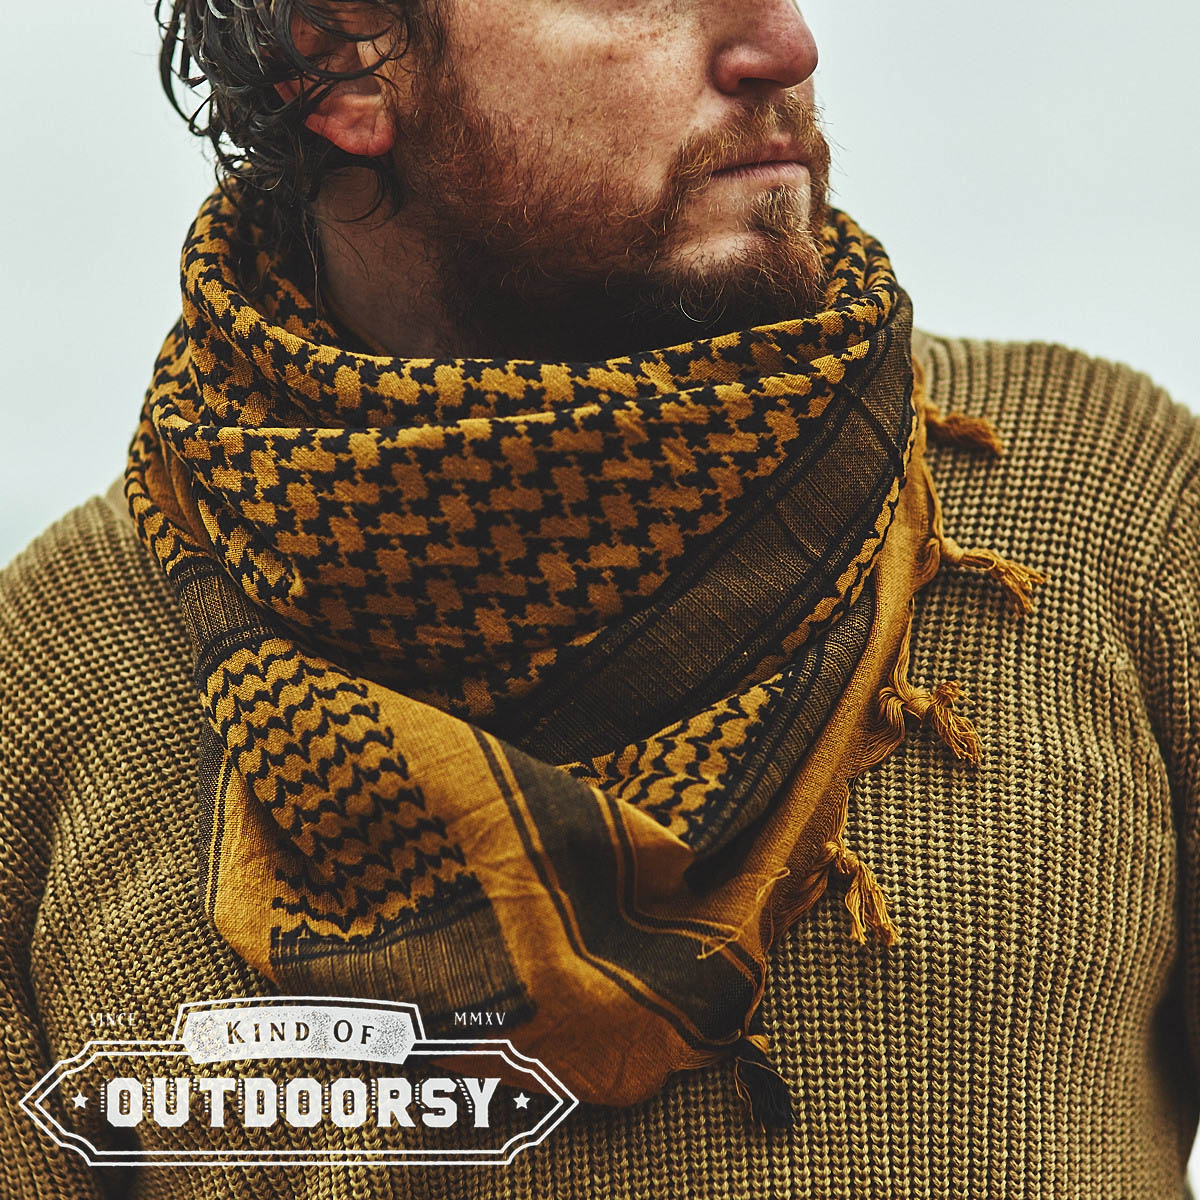 Heavyweight Shemagh Scarf in Coyote Brown and Black - Kind of Outdoorsy bbdca16e821